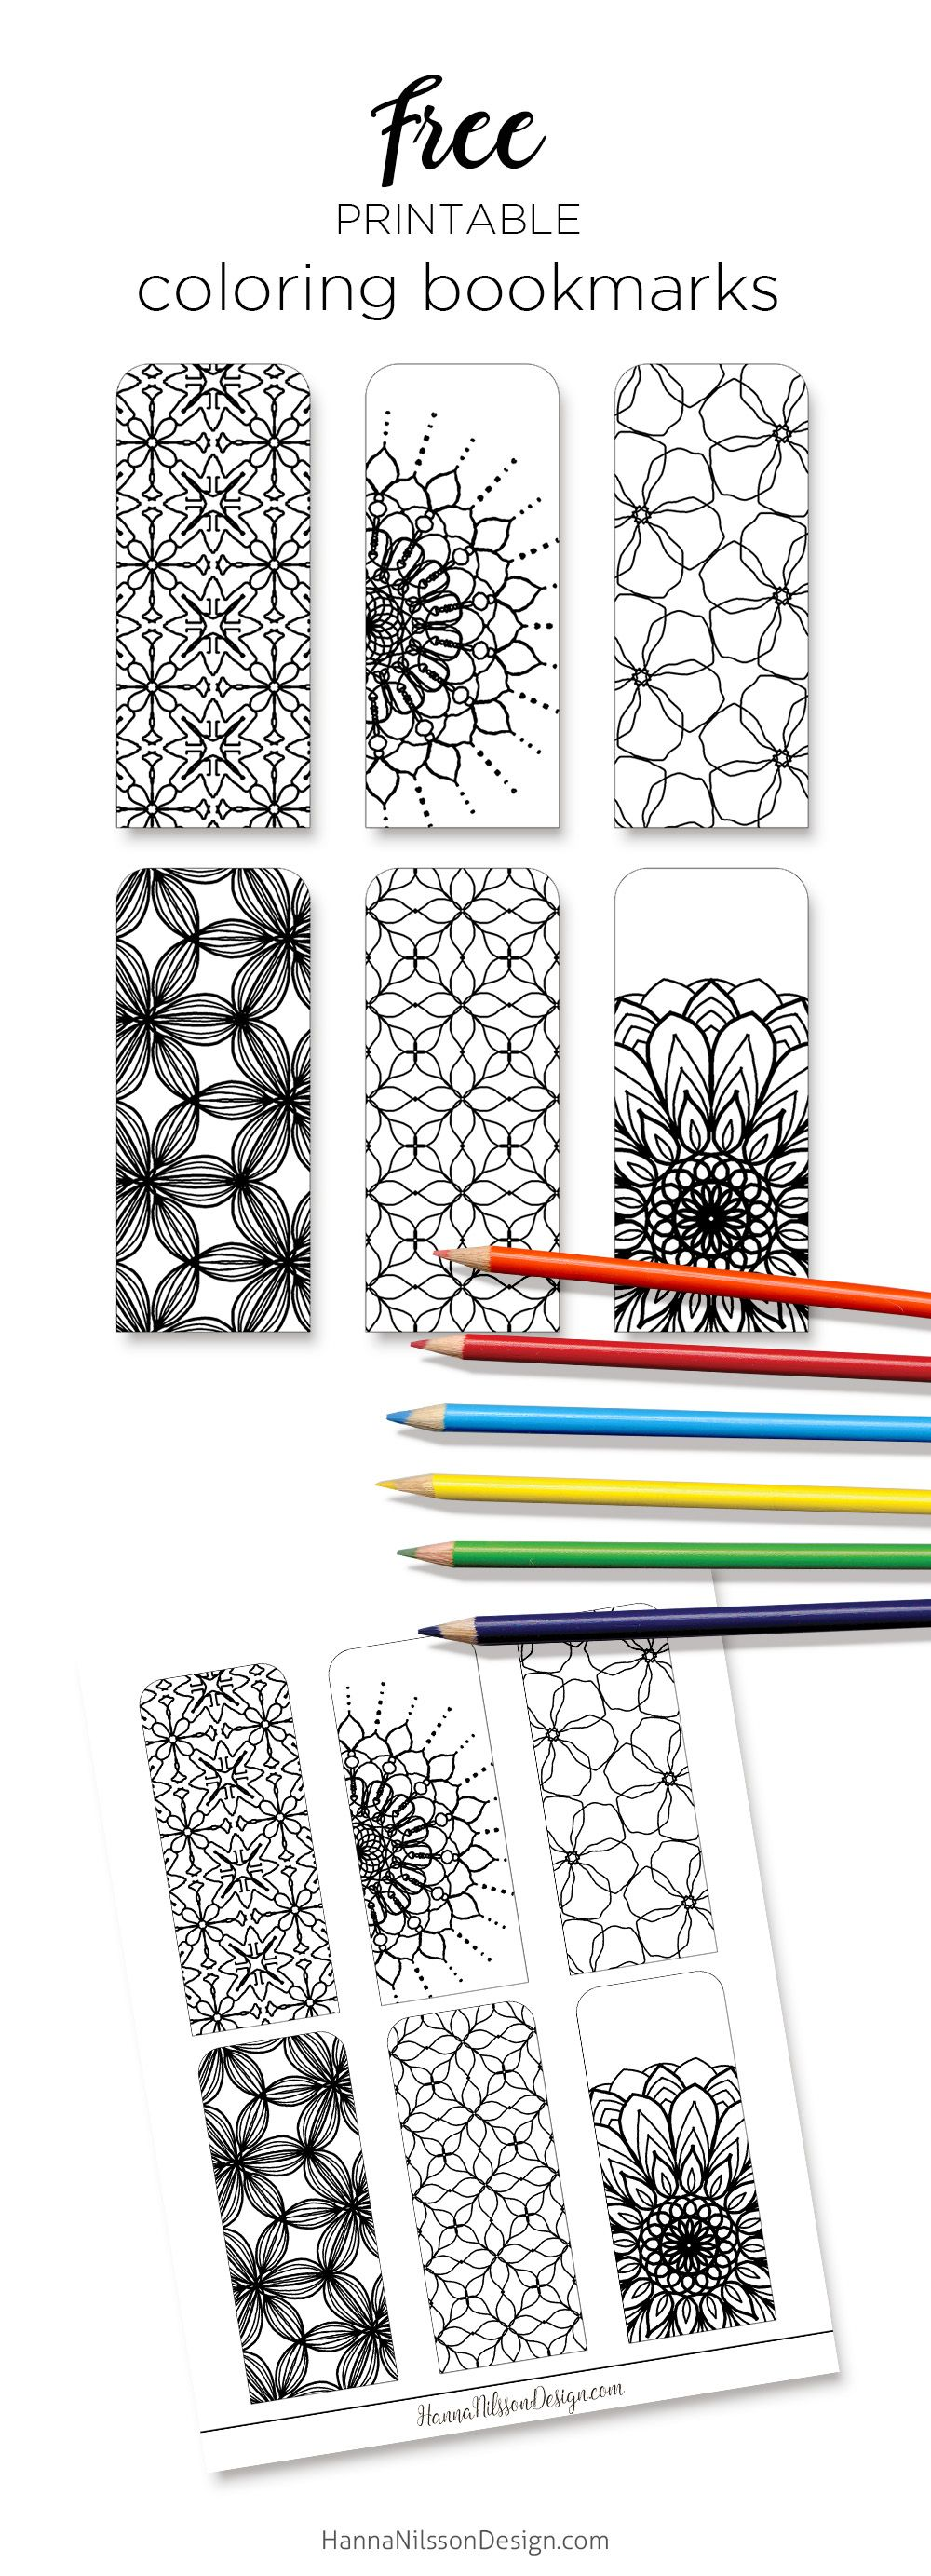 Color Your Own Bookmarks Free Printable Bookmarks For Coloring Just Download And Print Bookmark Printing Coloring Bookmarks Free Printable Bookmarks